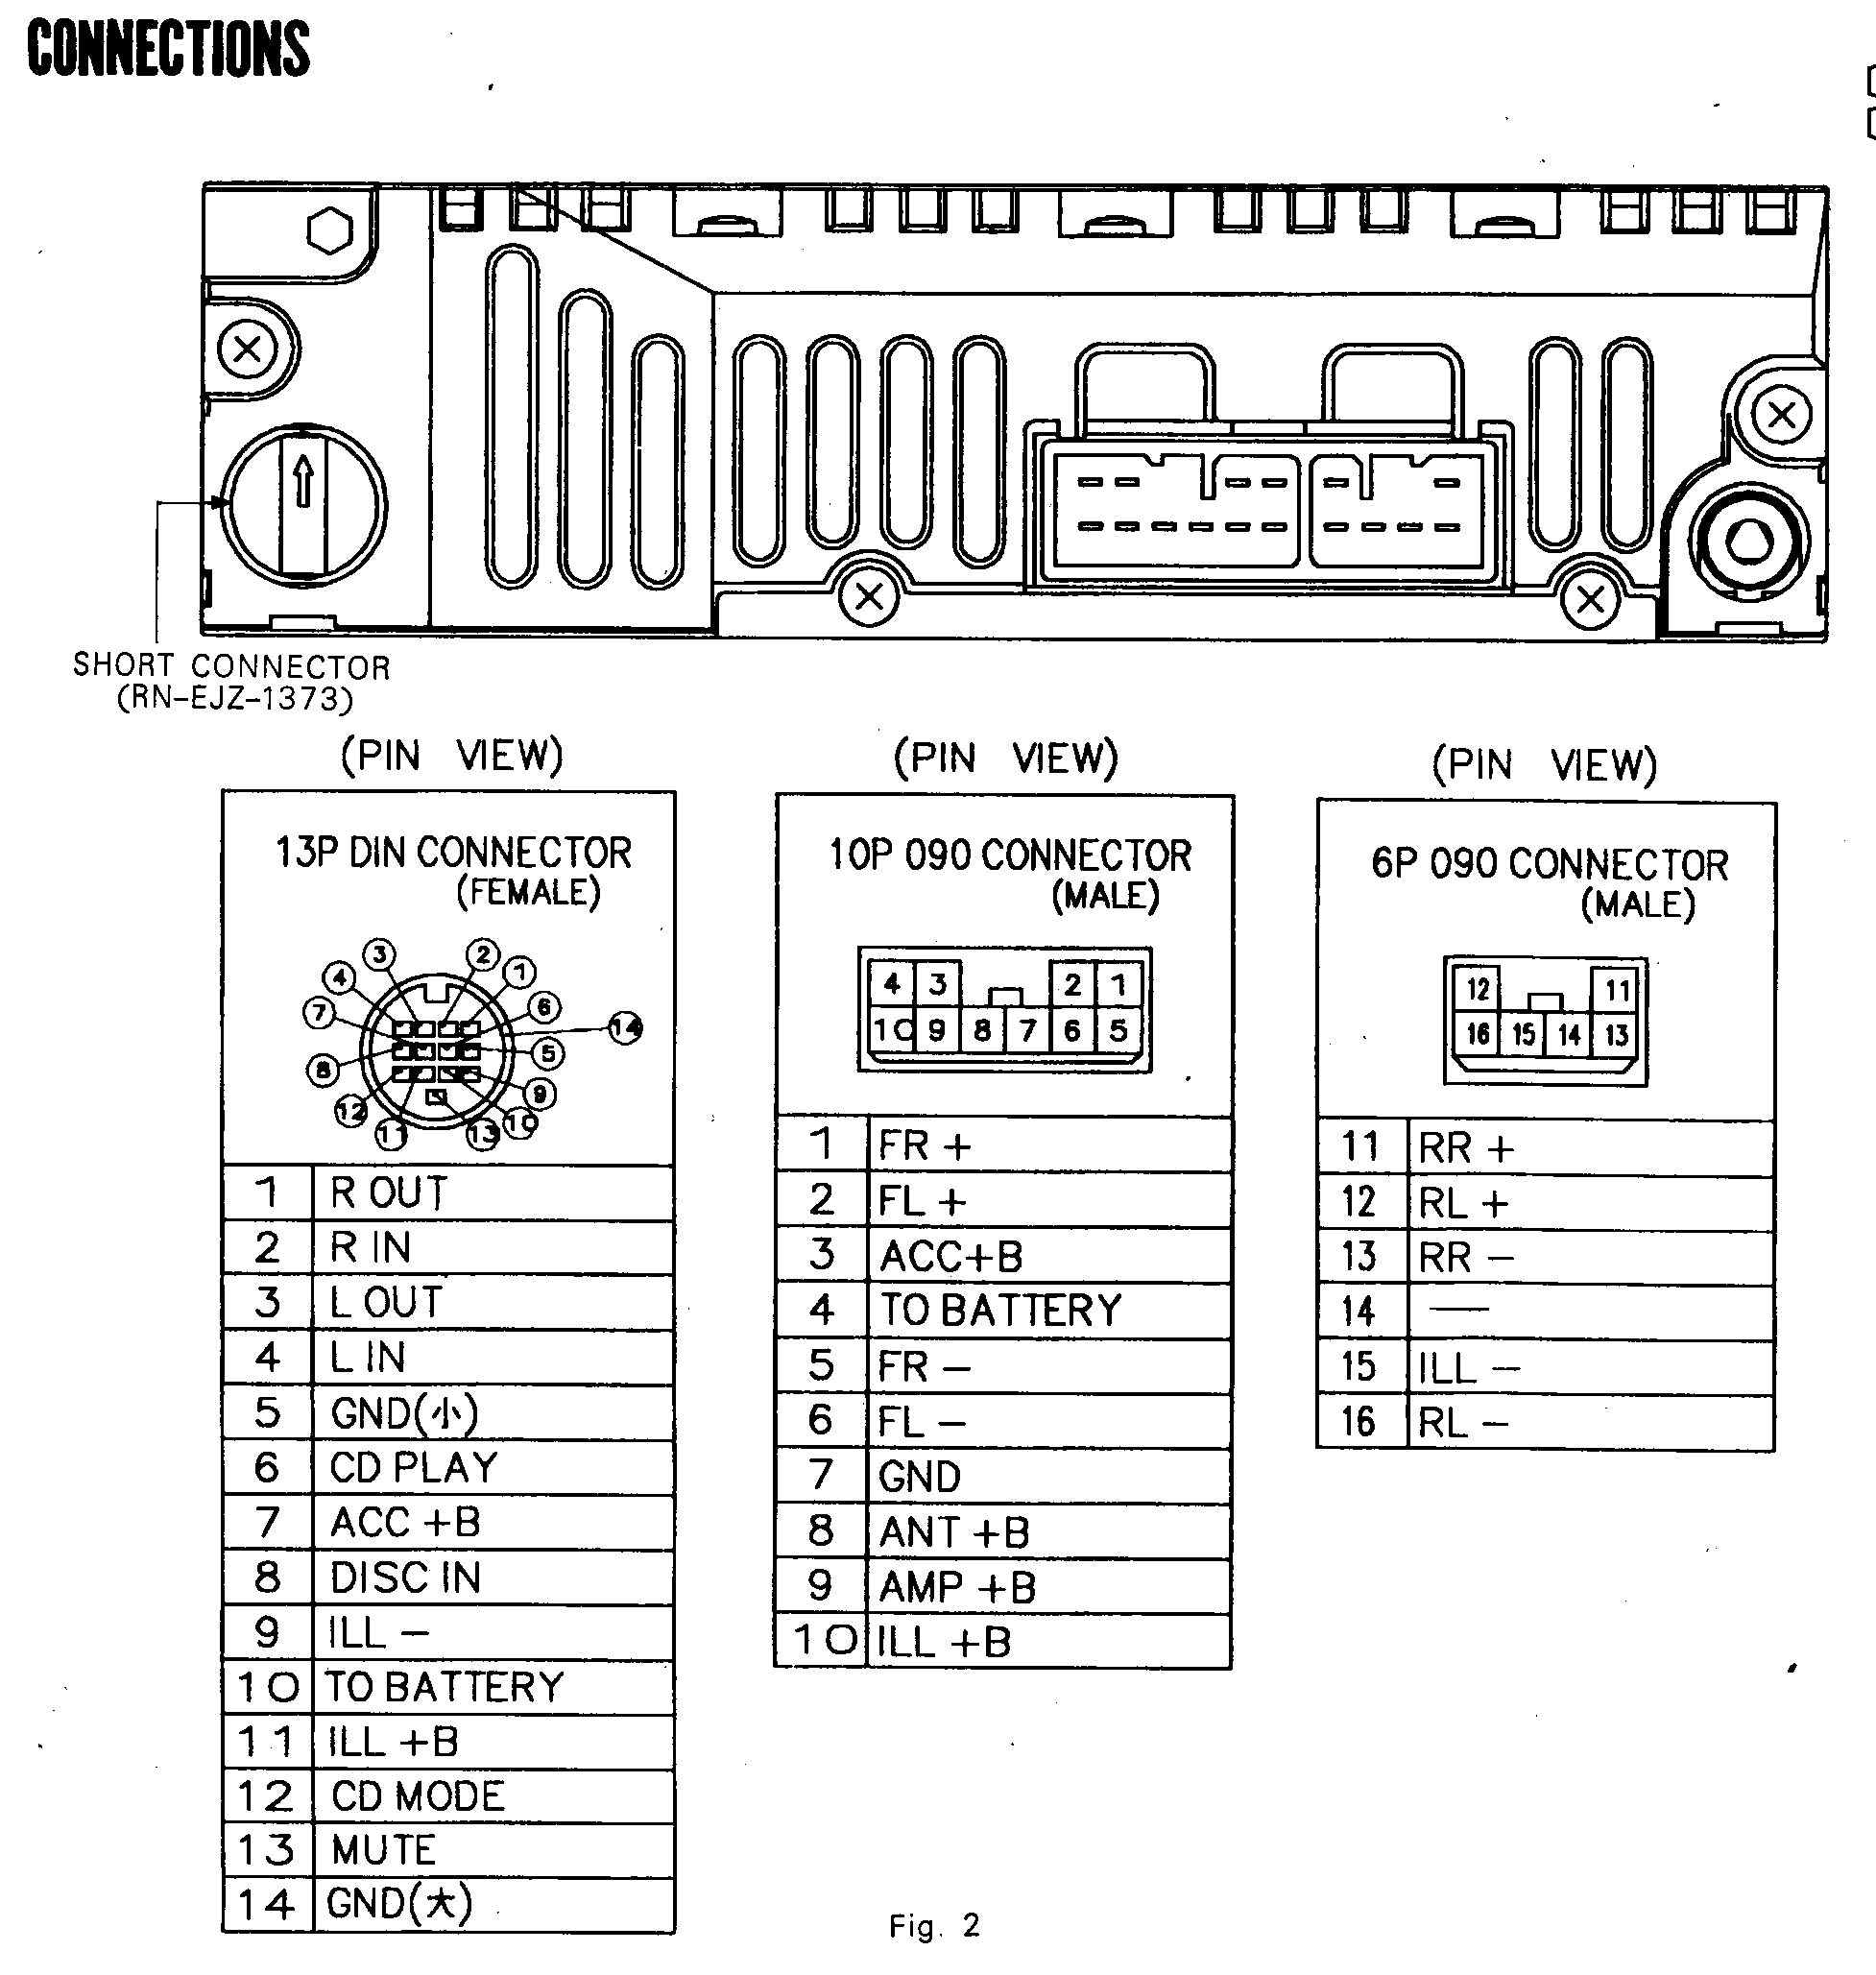 [DVZP_7254]   Wiring Diagram For Bose Car Audio | Gm Bose Audio Wiring Diagram |  | Wiring Diagram